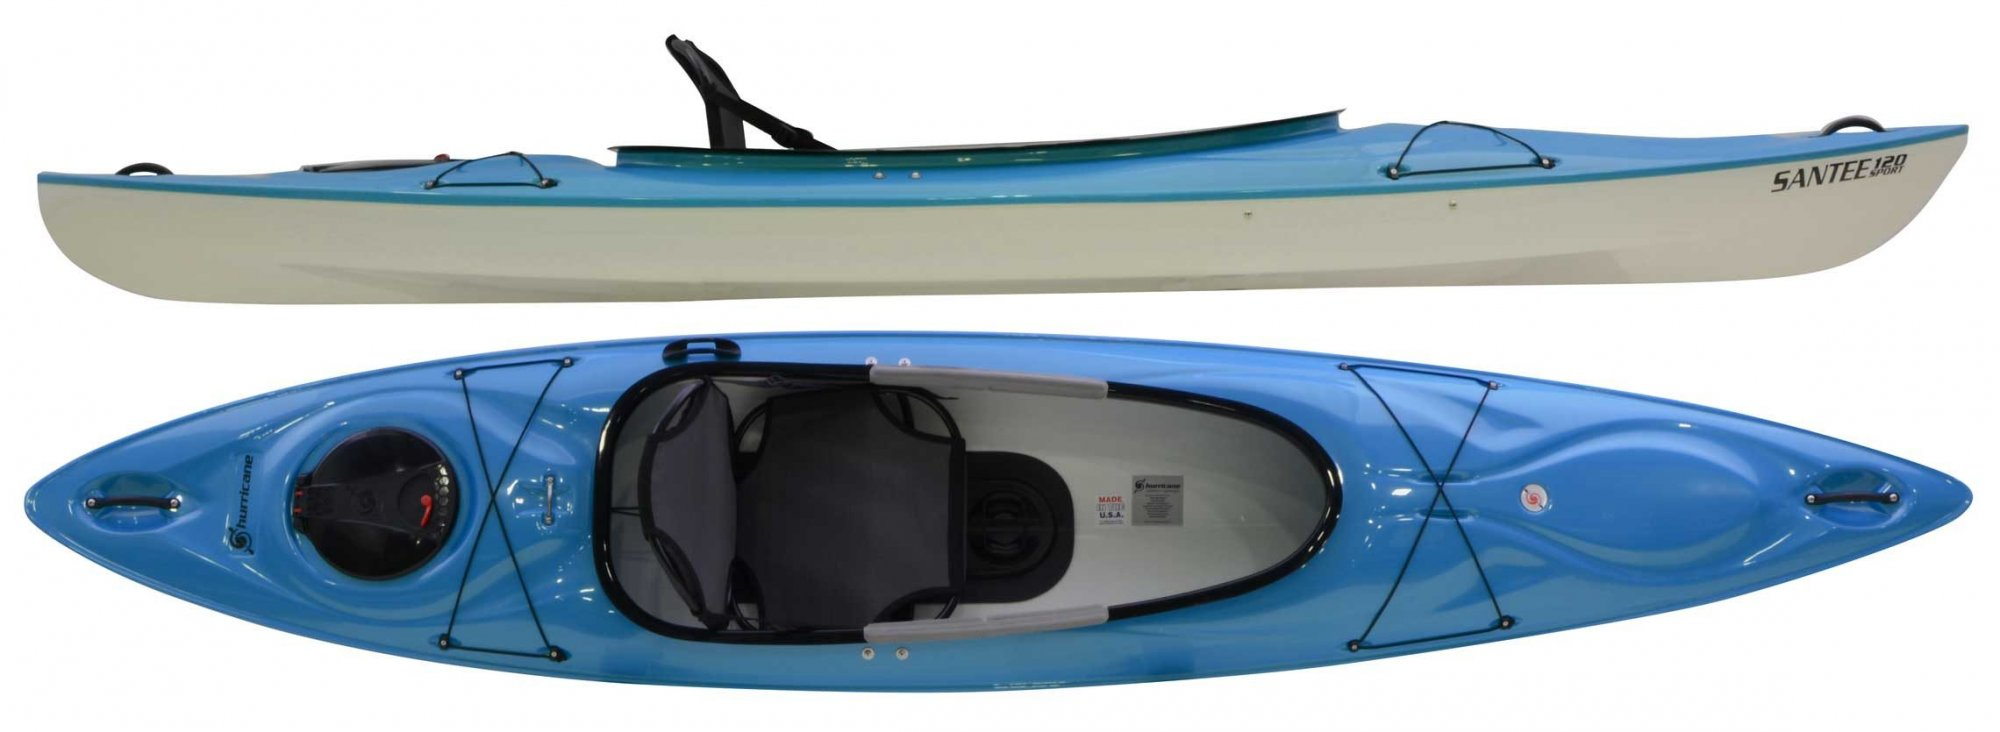 Hurricane Santee 120 Sport DEMO Kayak w/ Ultimate Frame Seat and Console